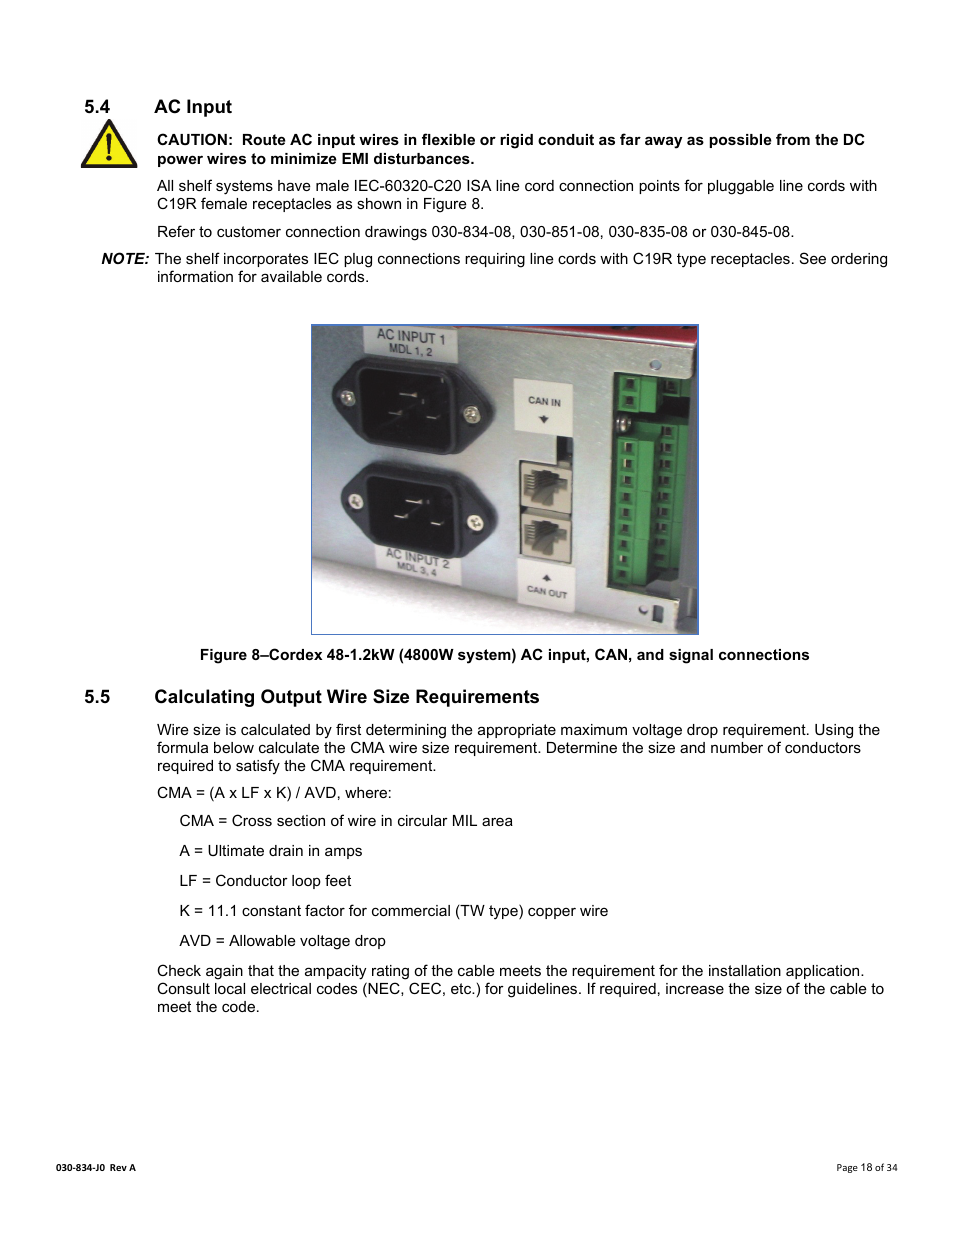 4 ac input, 5 calculating output wire size requirements, Ac input ...